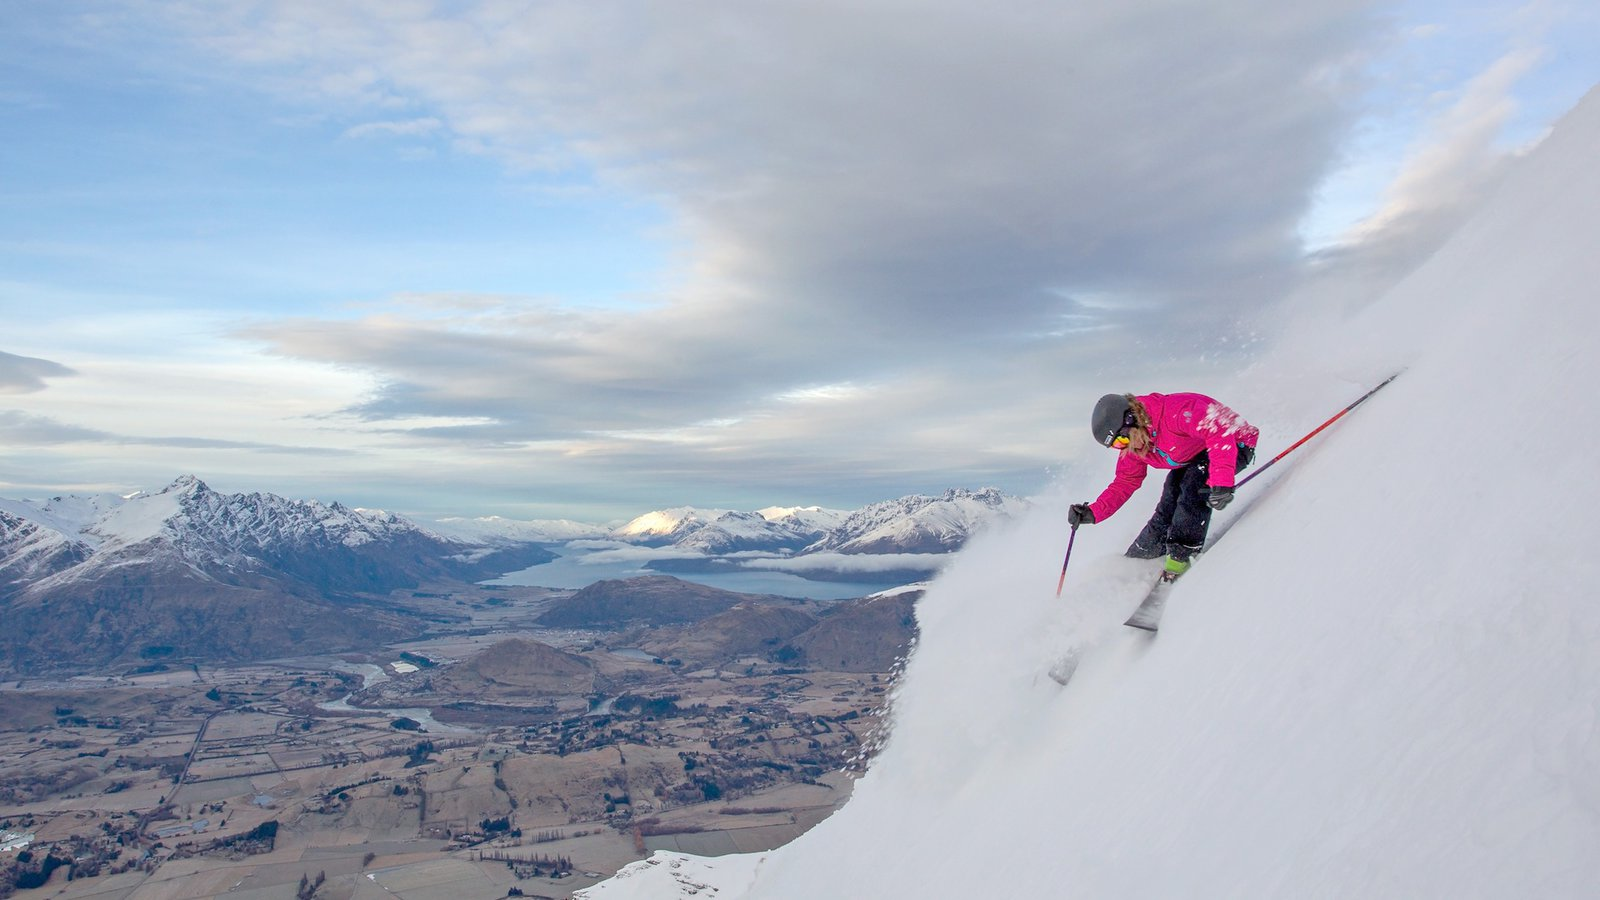 Luxury ski holiday in New Zealand